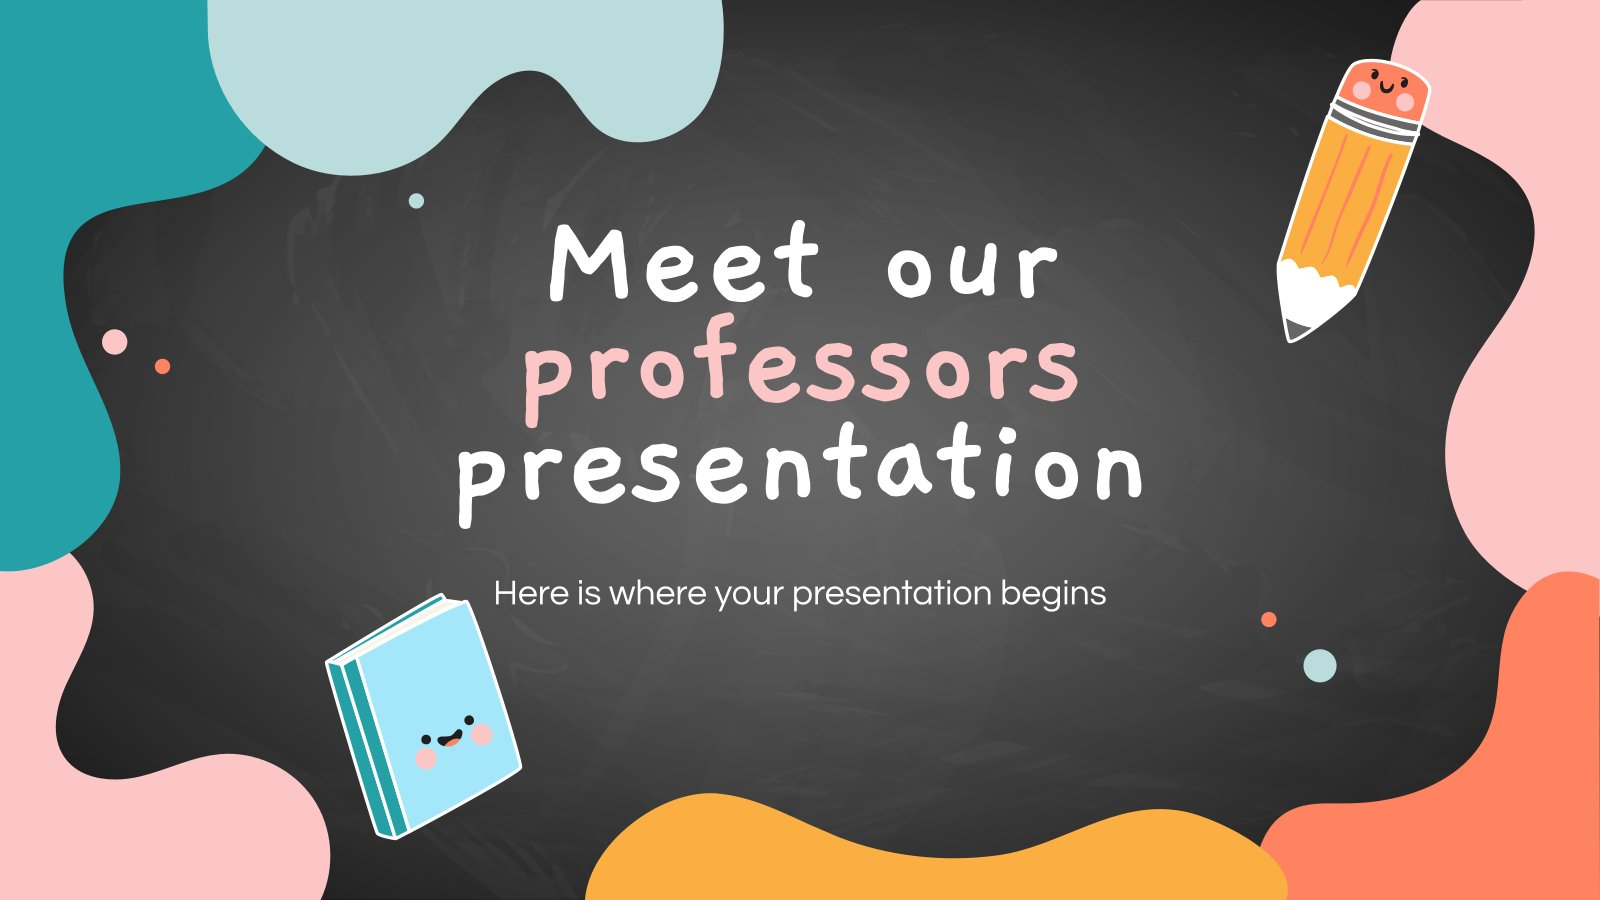 Meet Our Professors presentation template